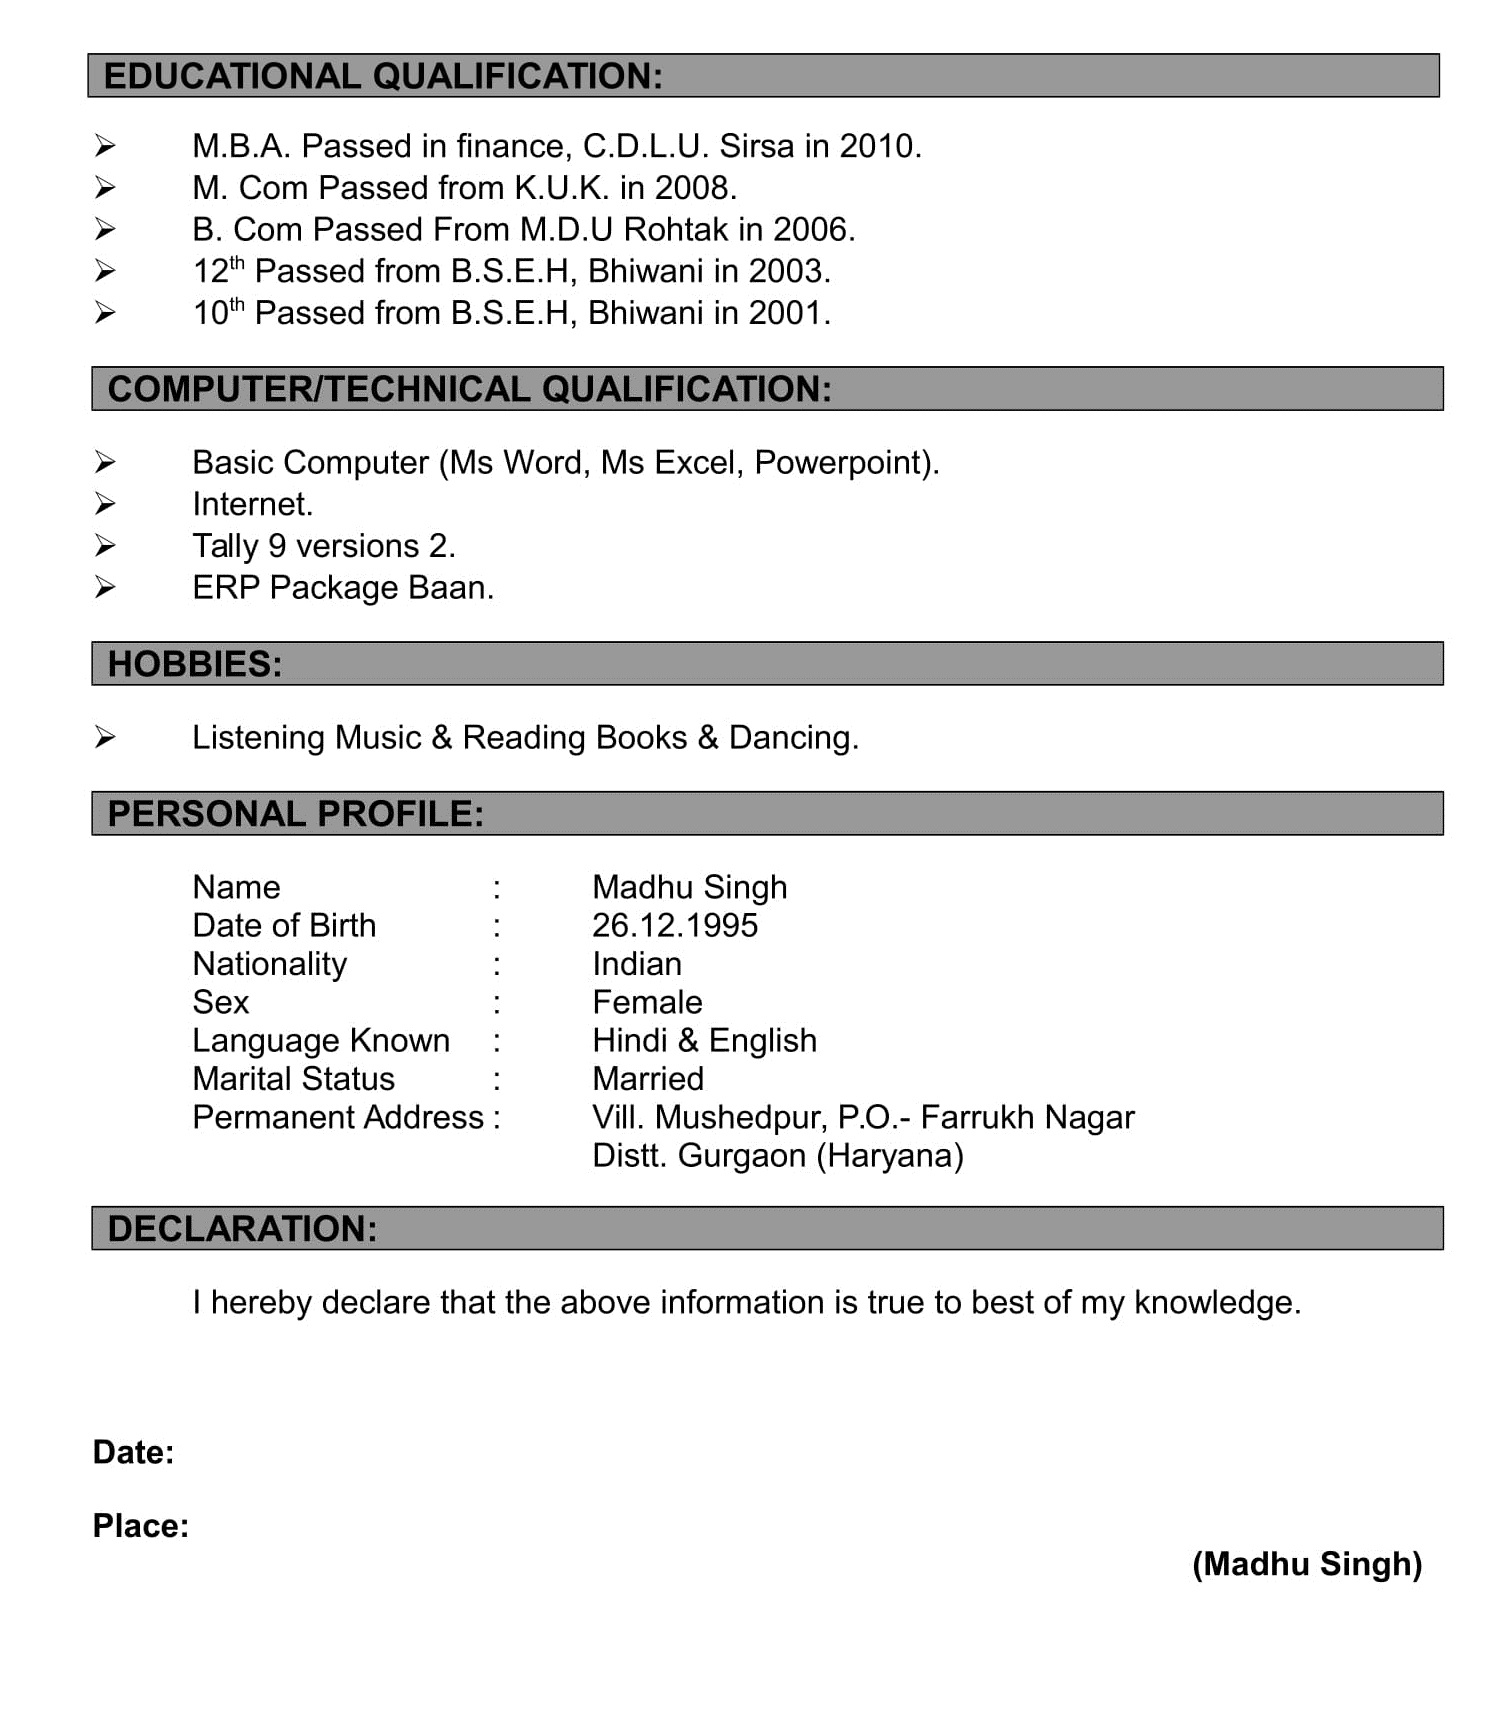 resume formats making format for fresher 12th pass pointers mature workers best paper Resume Resume Format For Fresher 12th Pass